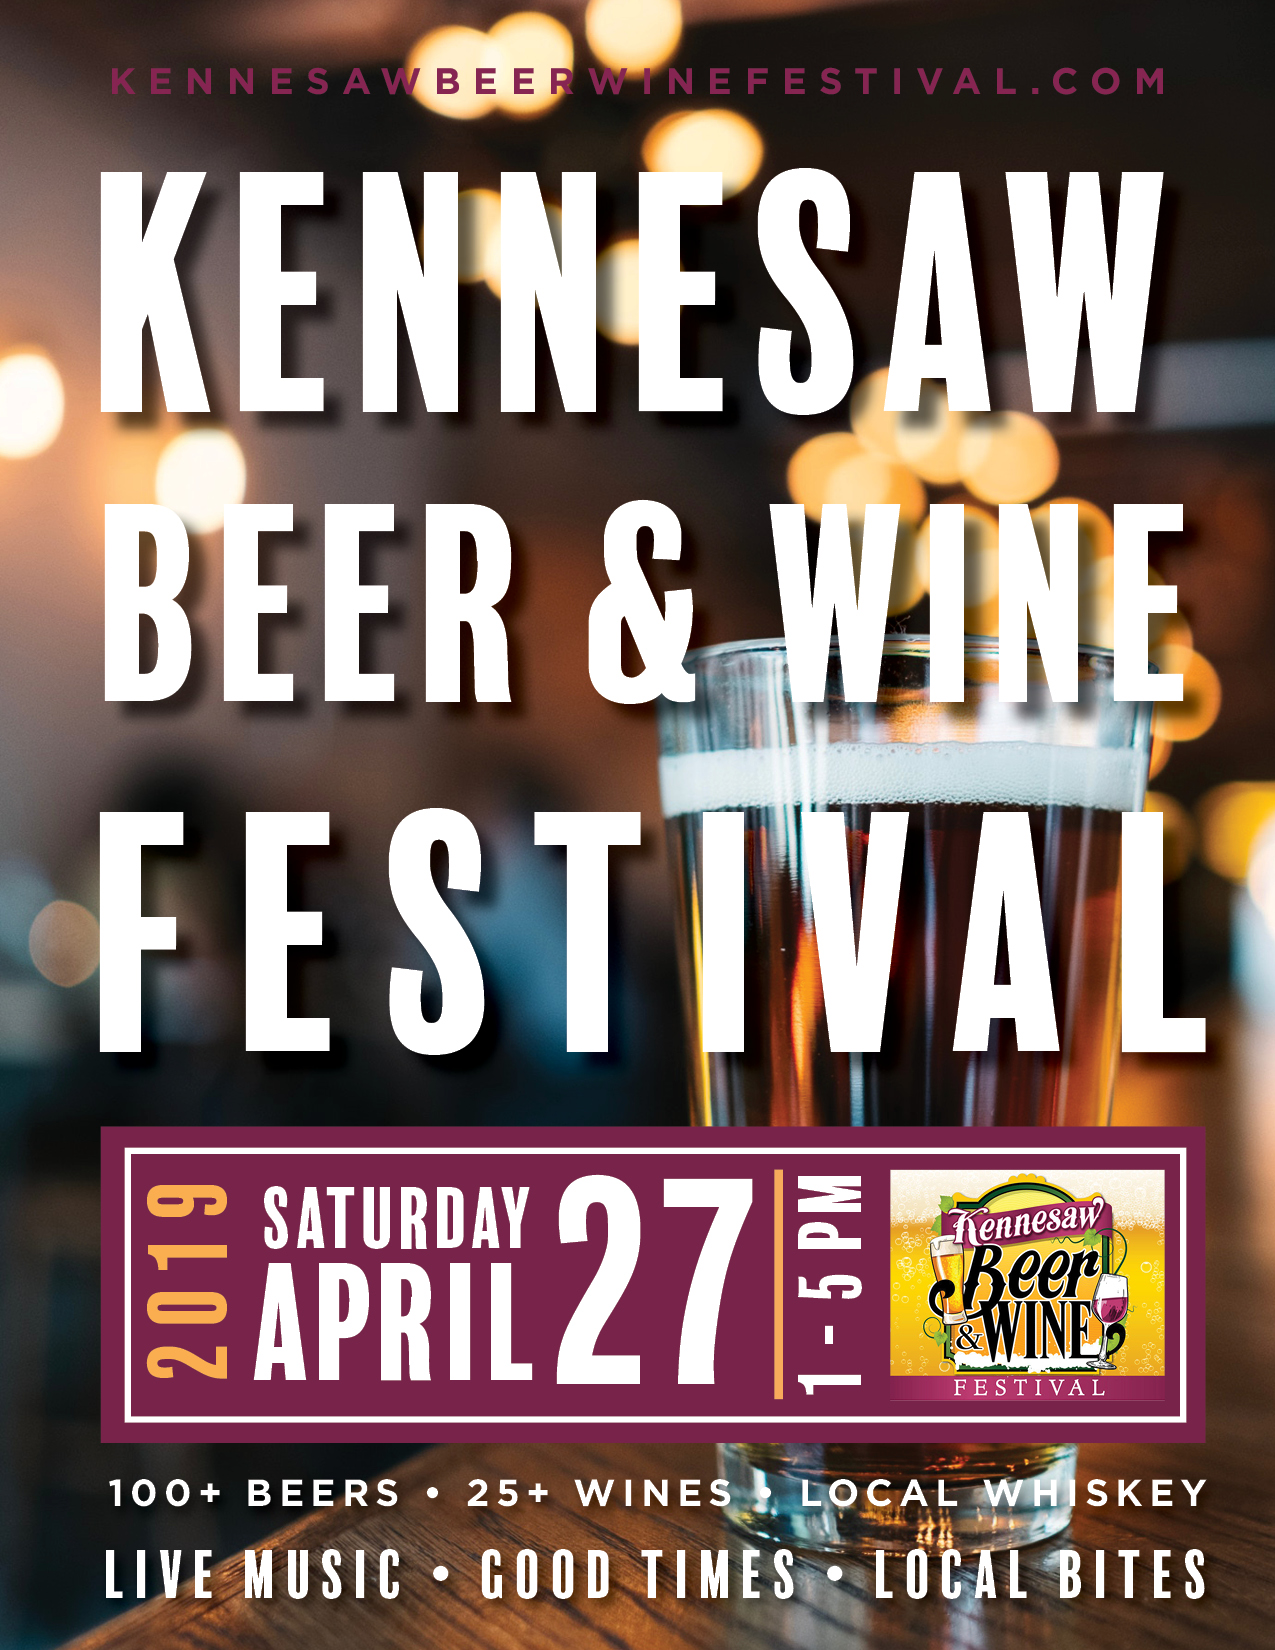 Poster concept 1 for Kennesaw Beer & Wine Festival